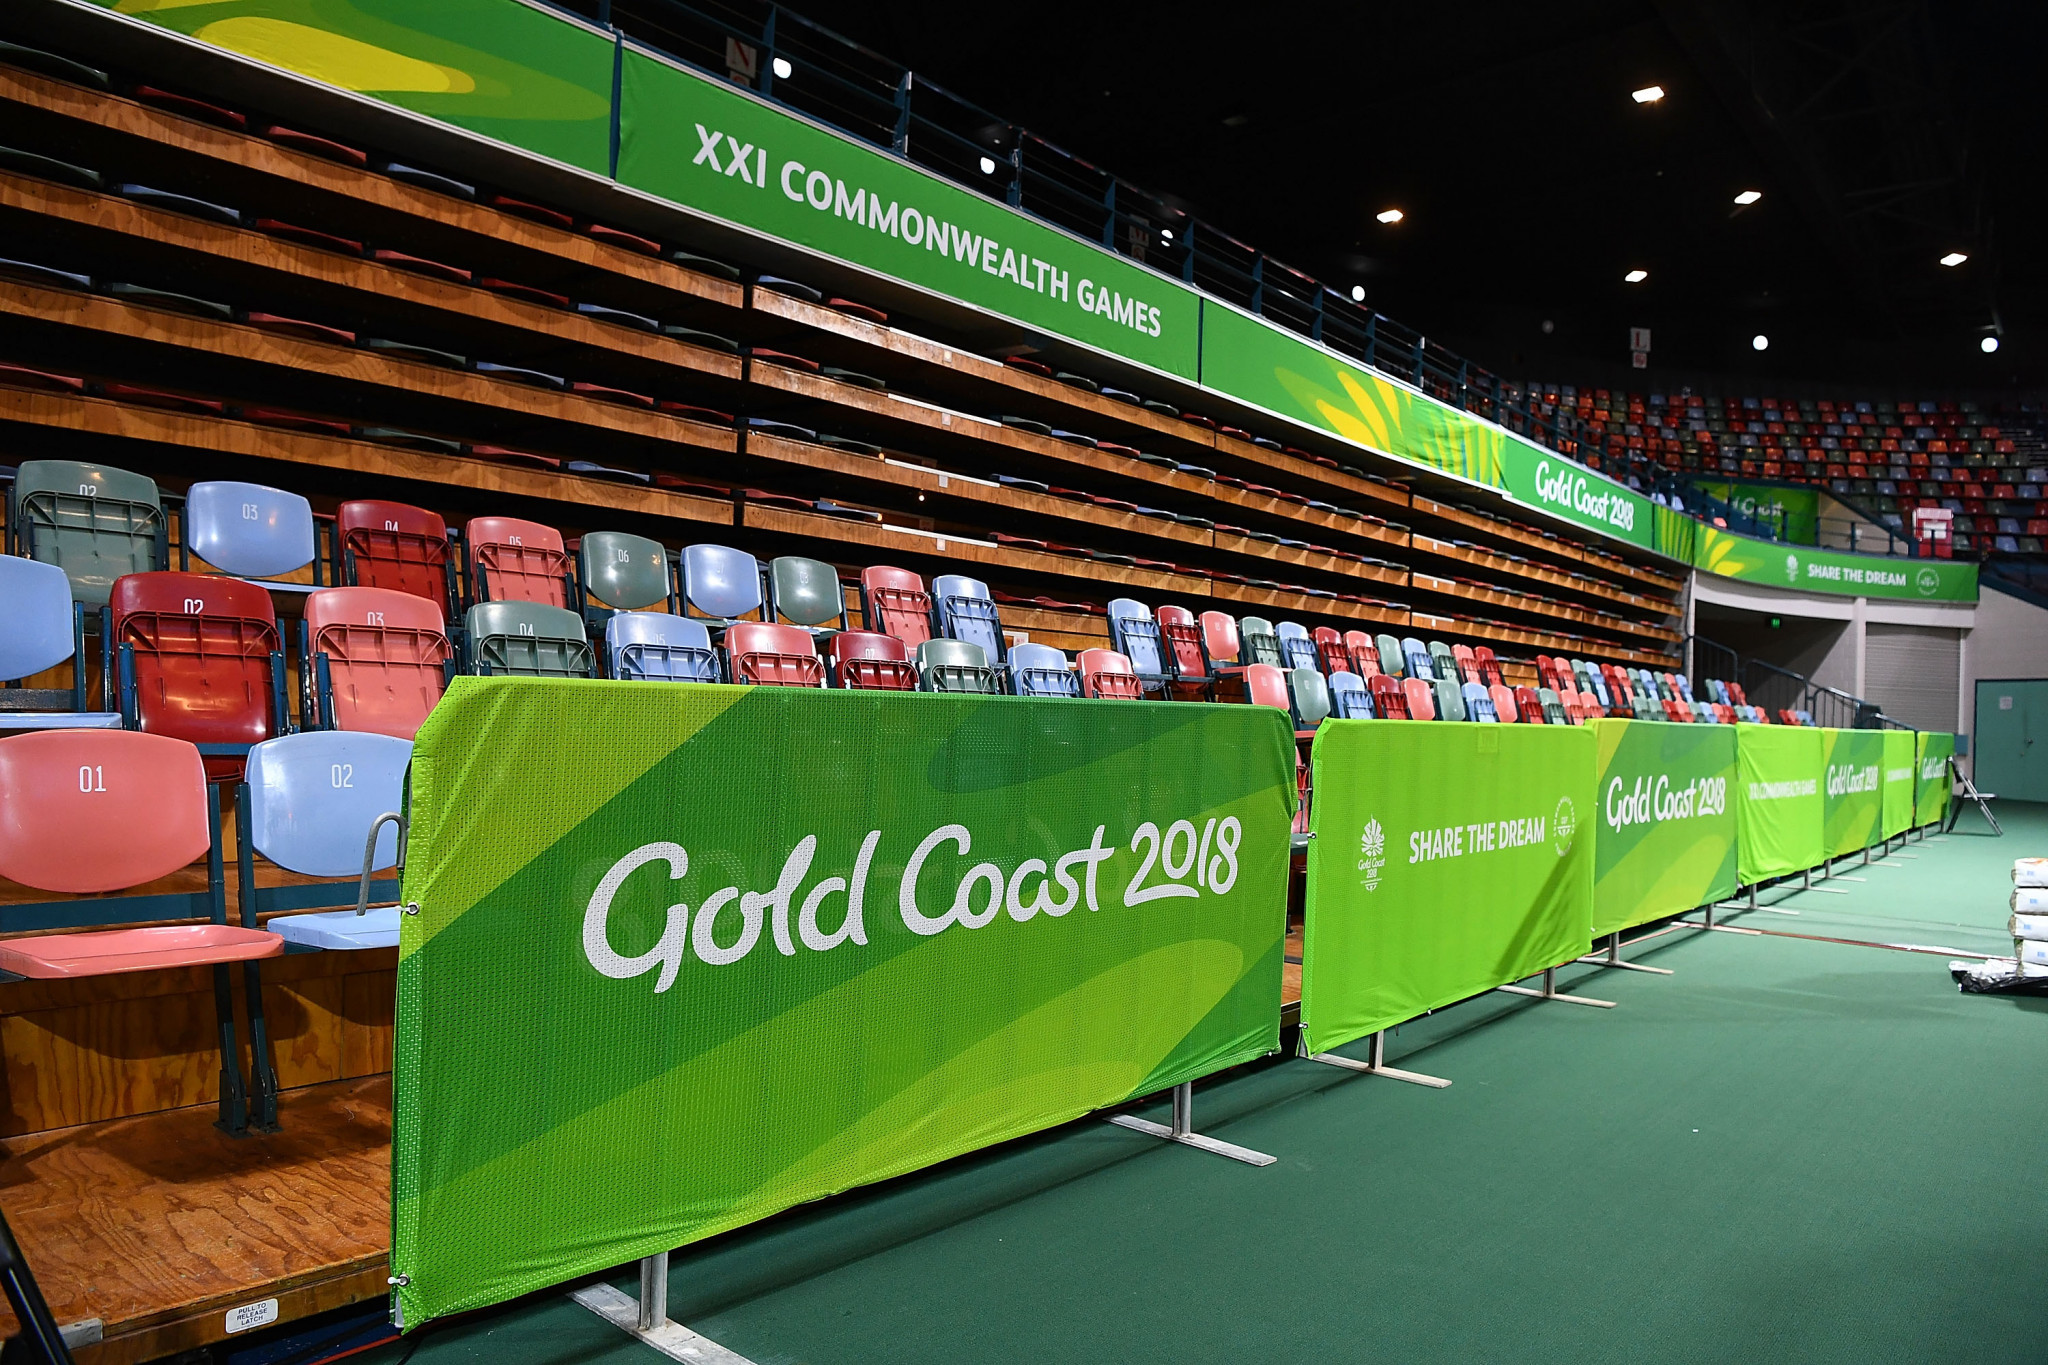 It is believed one in 31 of the athletes, officials and media who attended Gold Coast 2018 have not returned home to their respective countries ©Getty Images